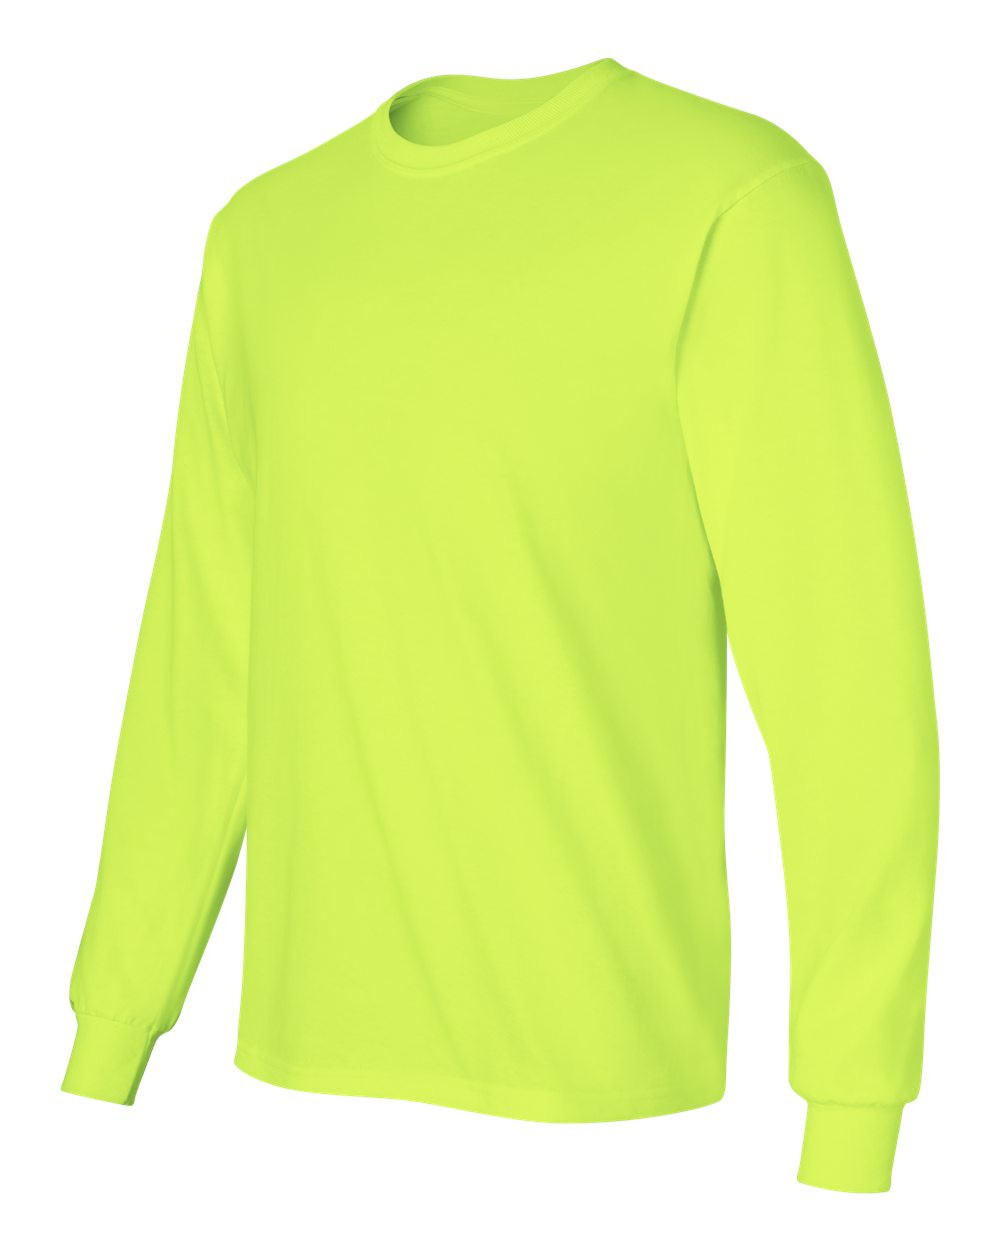 24b2fdb216974 Gildan - Ultra Cotton 100% Cotton Long Sleeve T-Shirt. G2400. Loading zoom.  Hover over image to zoom